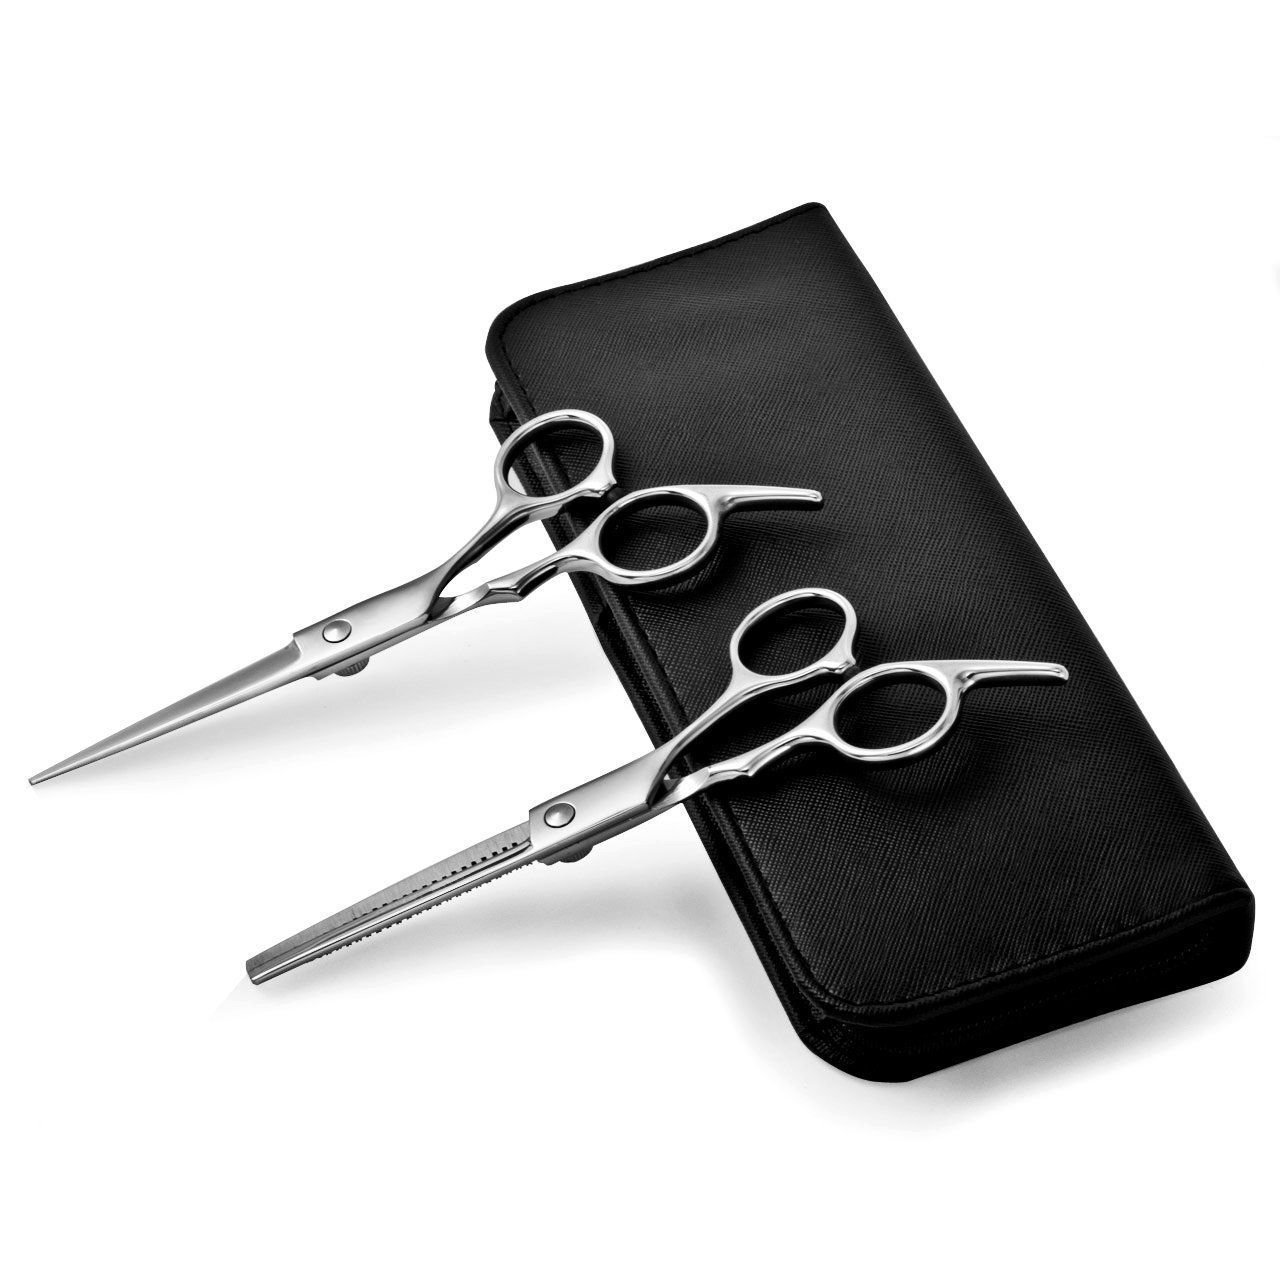 Generic ....rooming Sc Grooming Scissors Set Shears Set Grooming Scis Cat Hair air Cutting Professional Pet Dog sional Cutting Thinning ofe